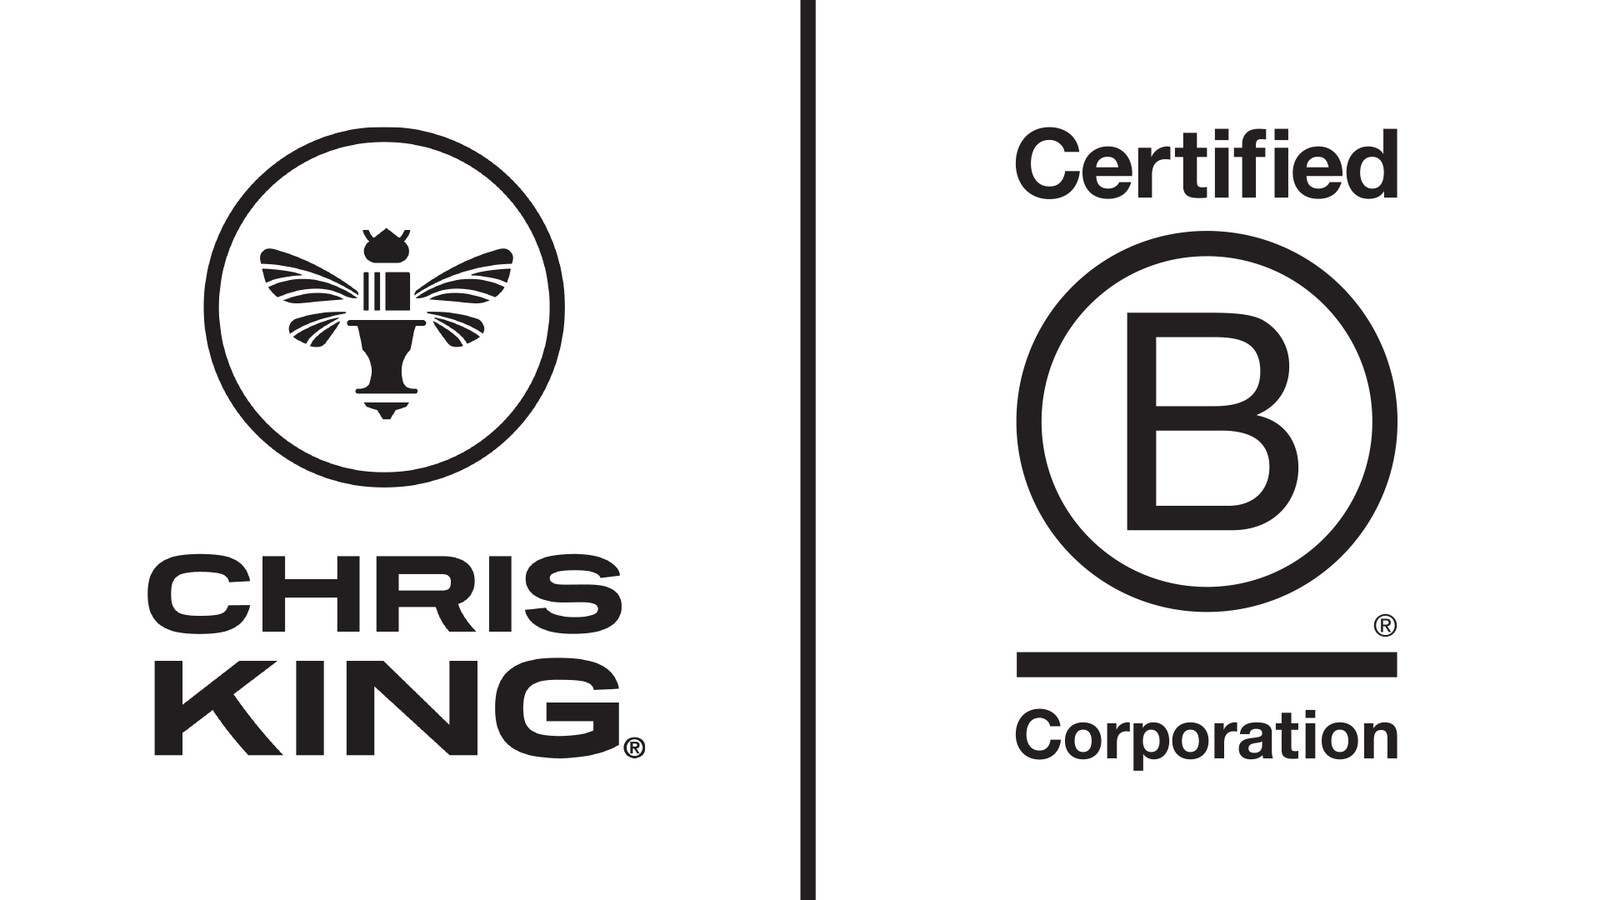 Chris King is Now a Certified B Corp